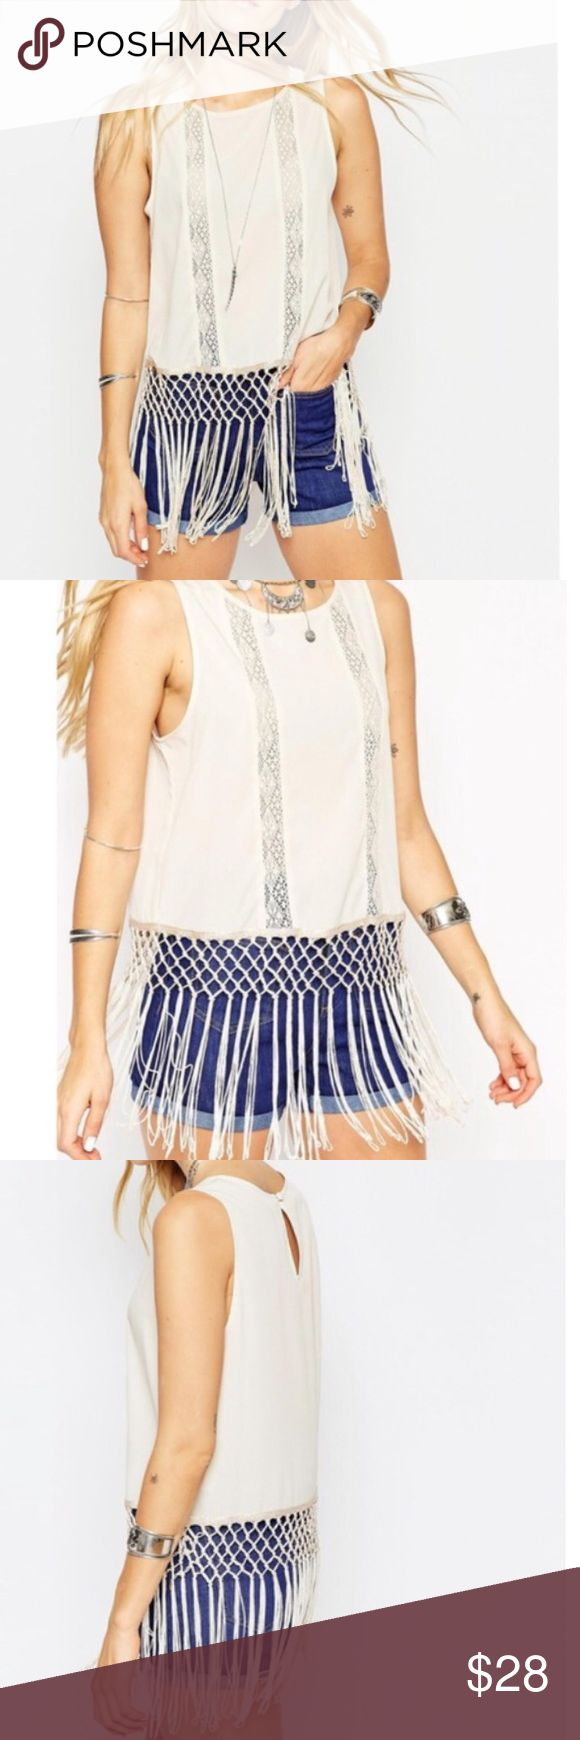 ASOS Fringe & lace top ASOS Fringe & lace top. Light nude top with lace panels and all the fringe!! ASOS Tops